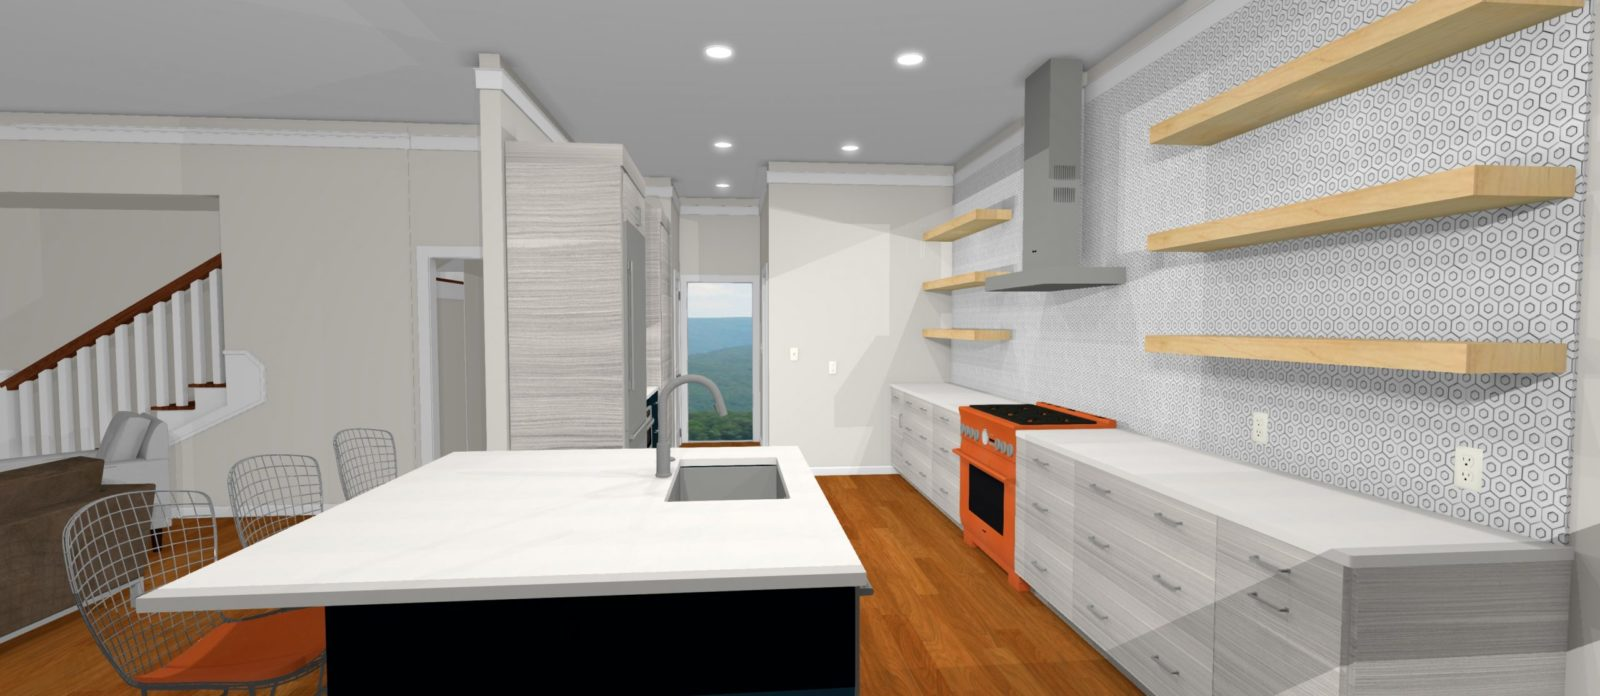 a virtual rendering of your soon-to-be remodeled home